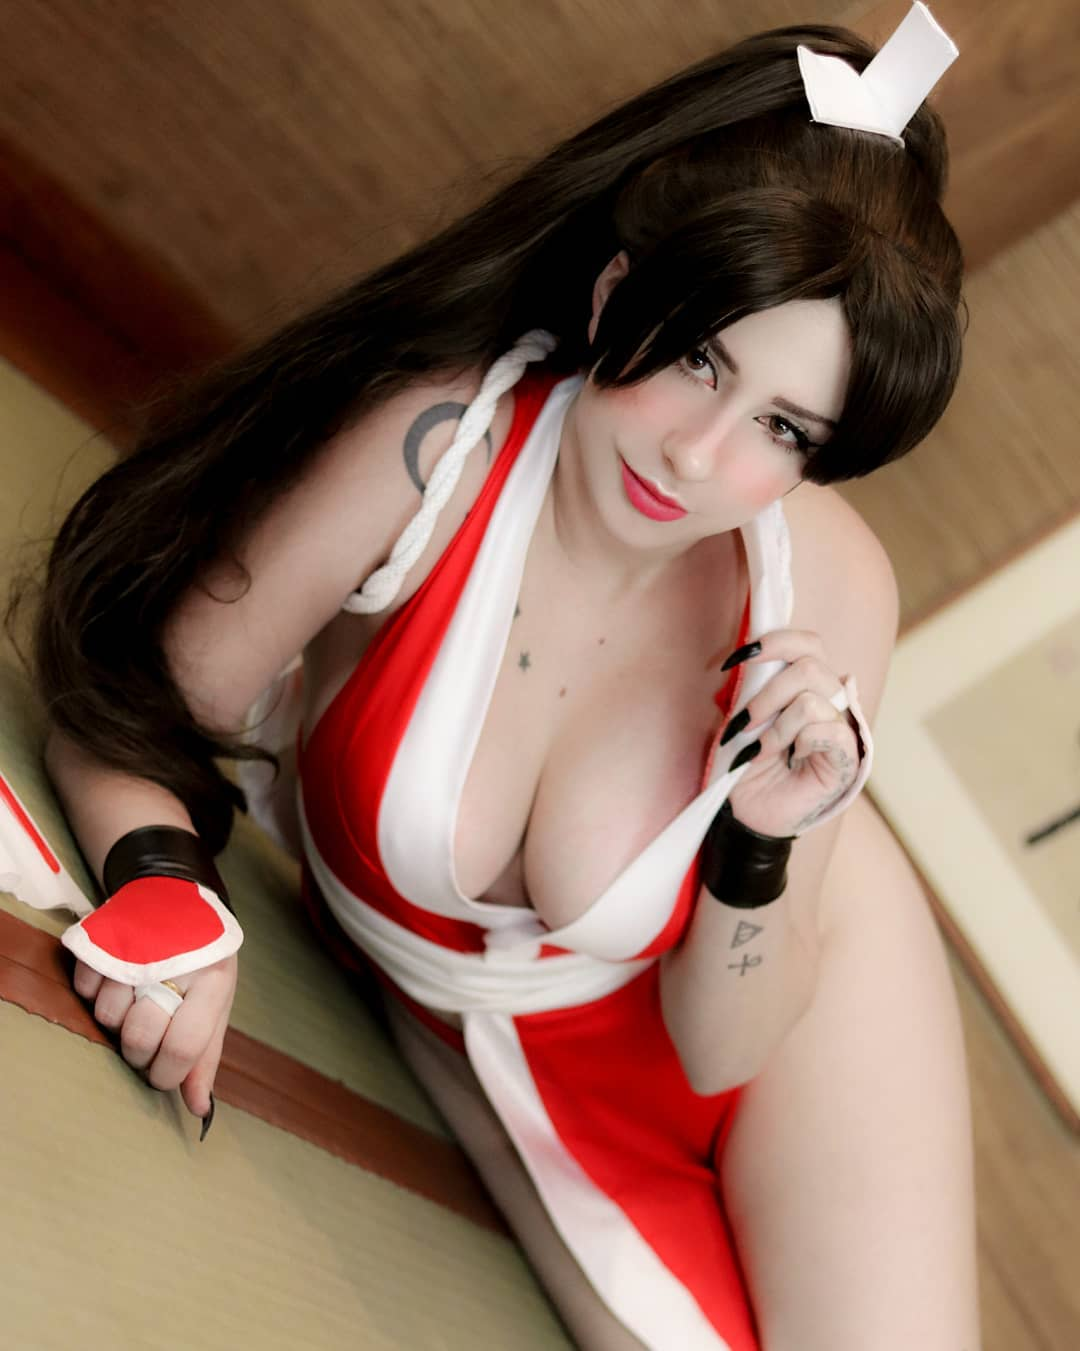 Mai Shiranui From King Of Fighters By Giu Hellsing